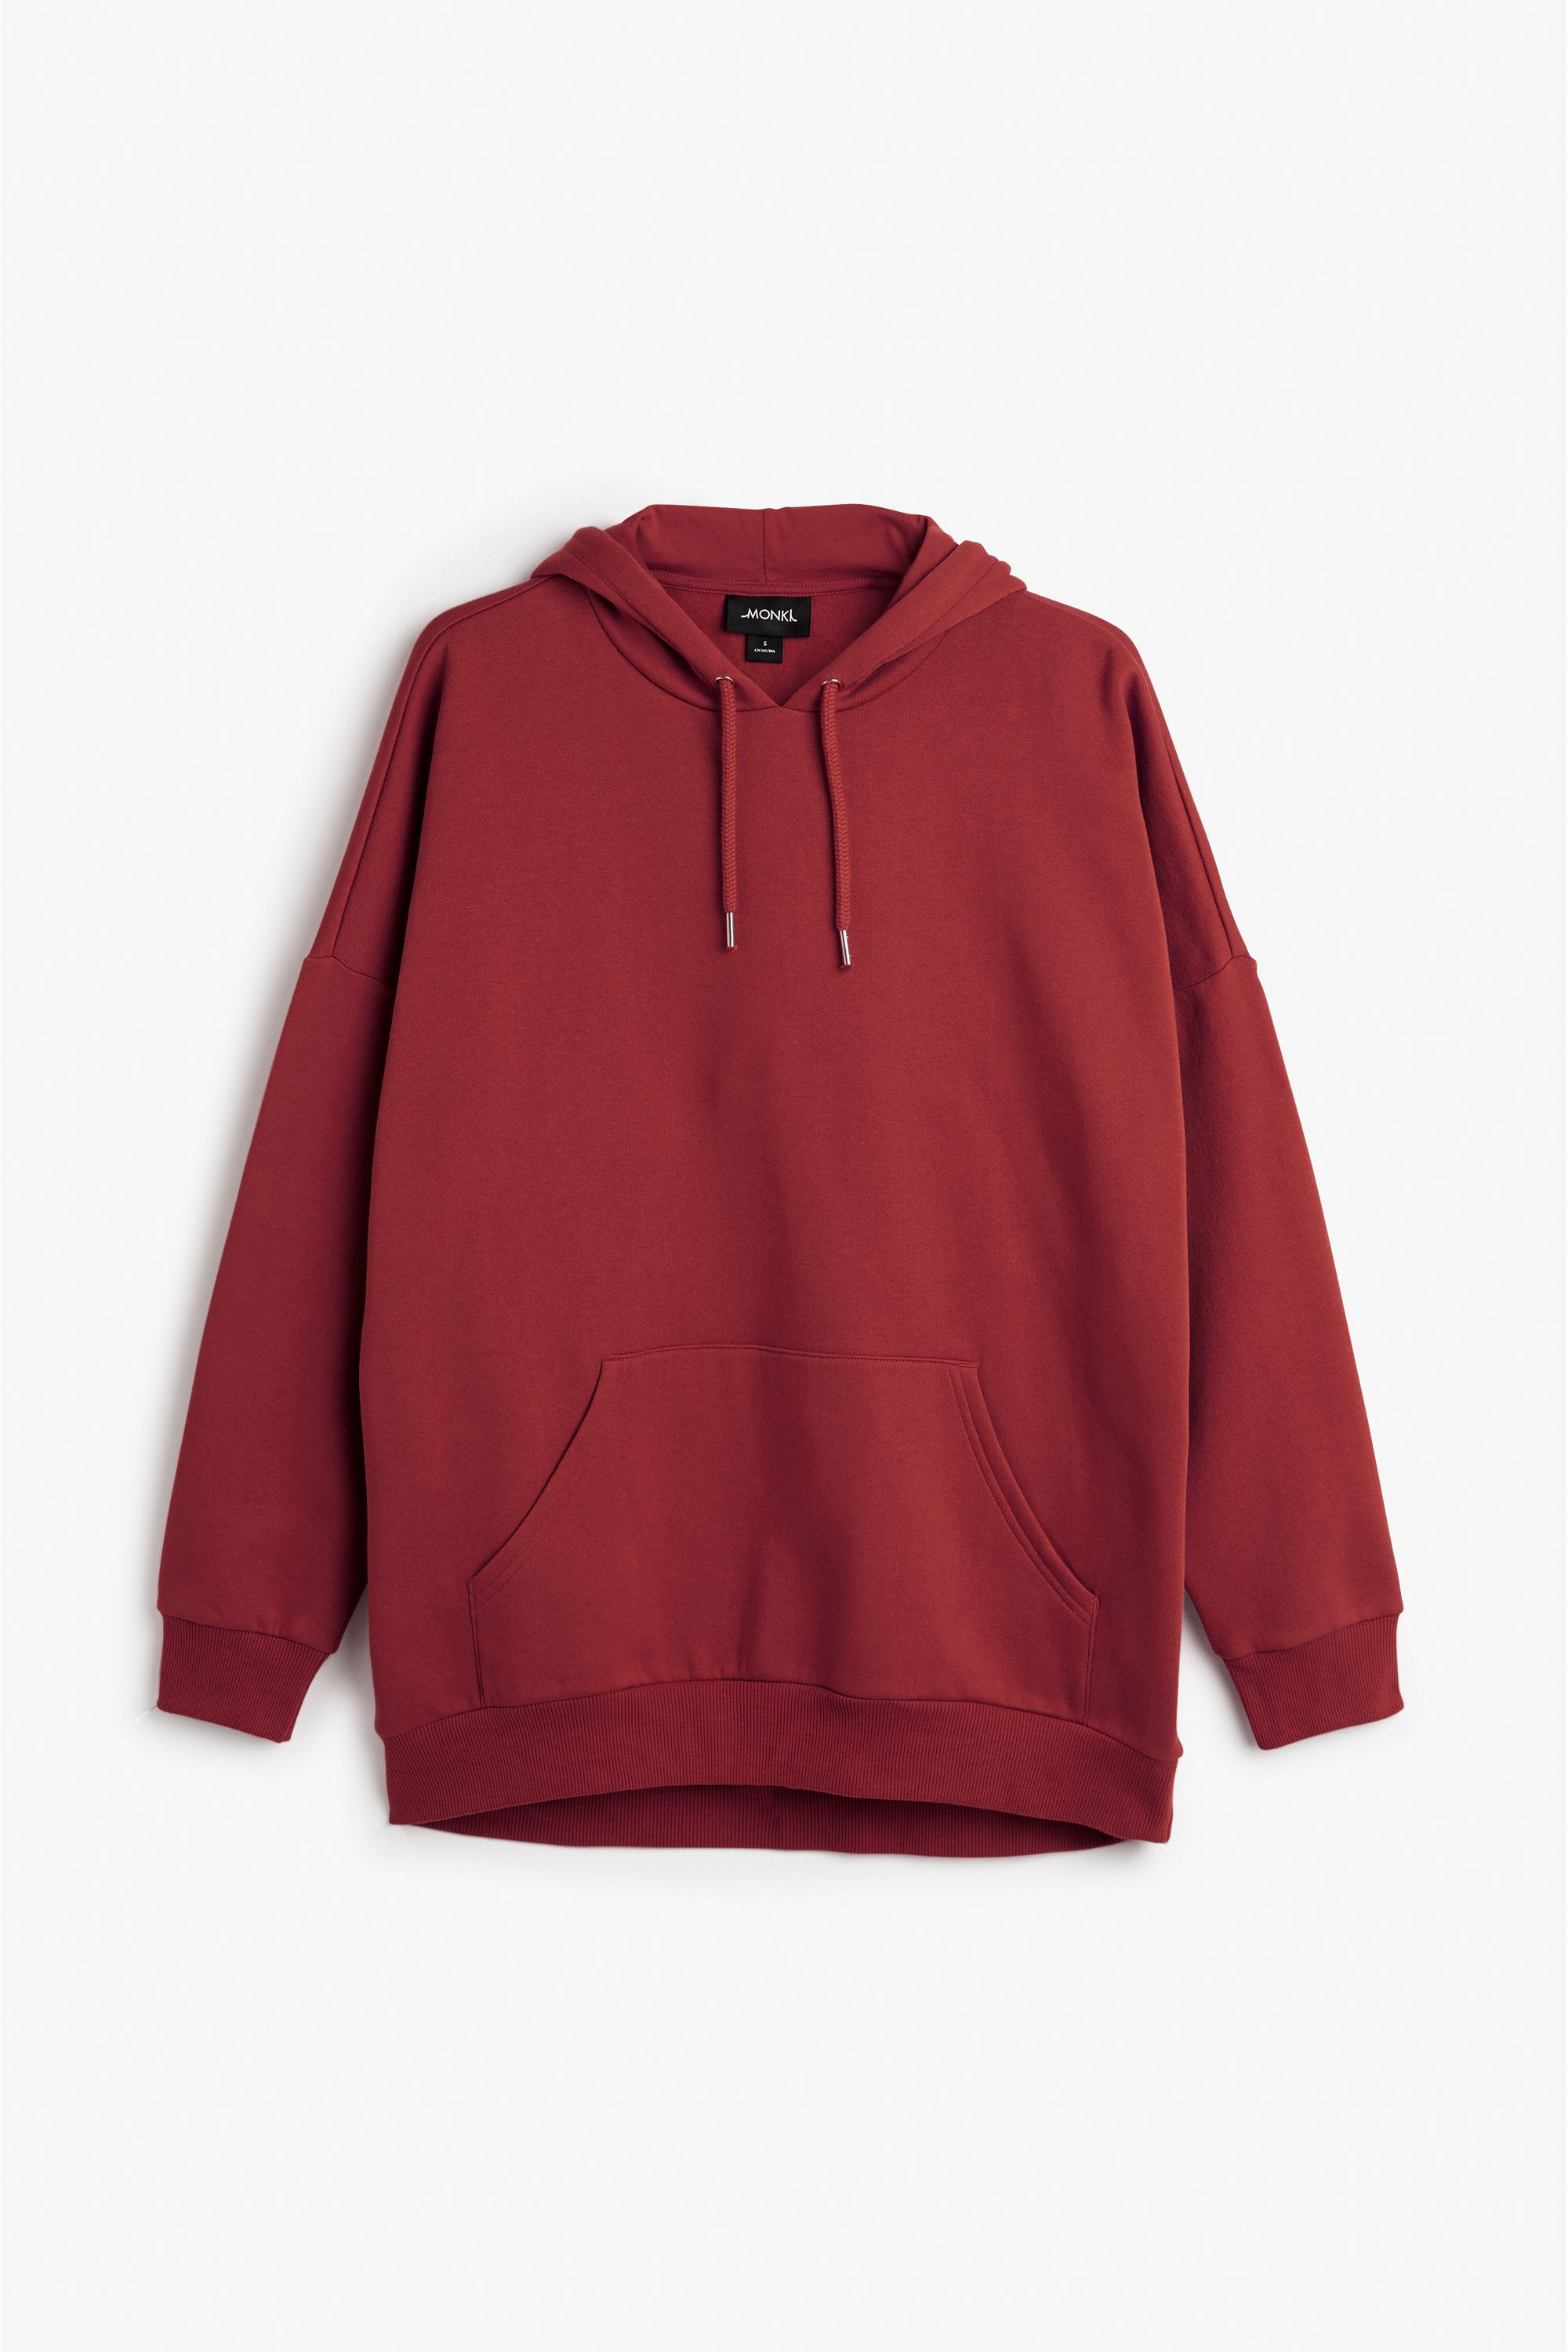 22a2d8d46 Monki Image 1 of Oversize hoodie in Red Yellowish Dark | outfits ...